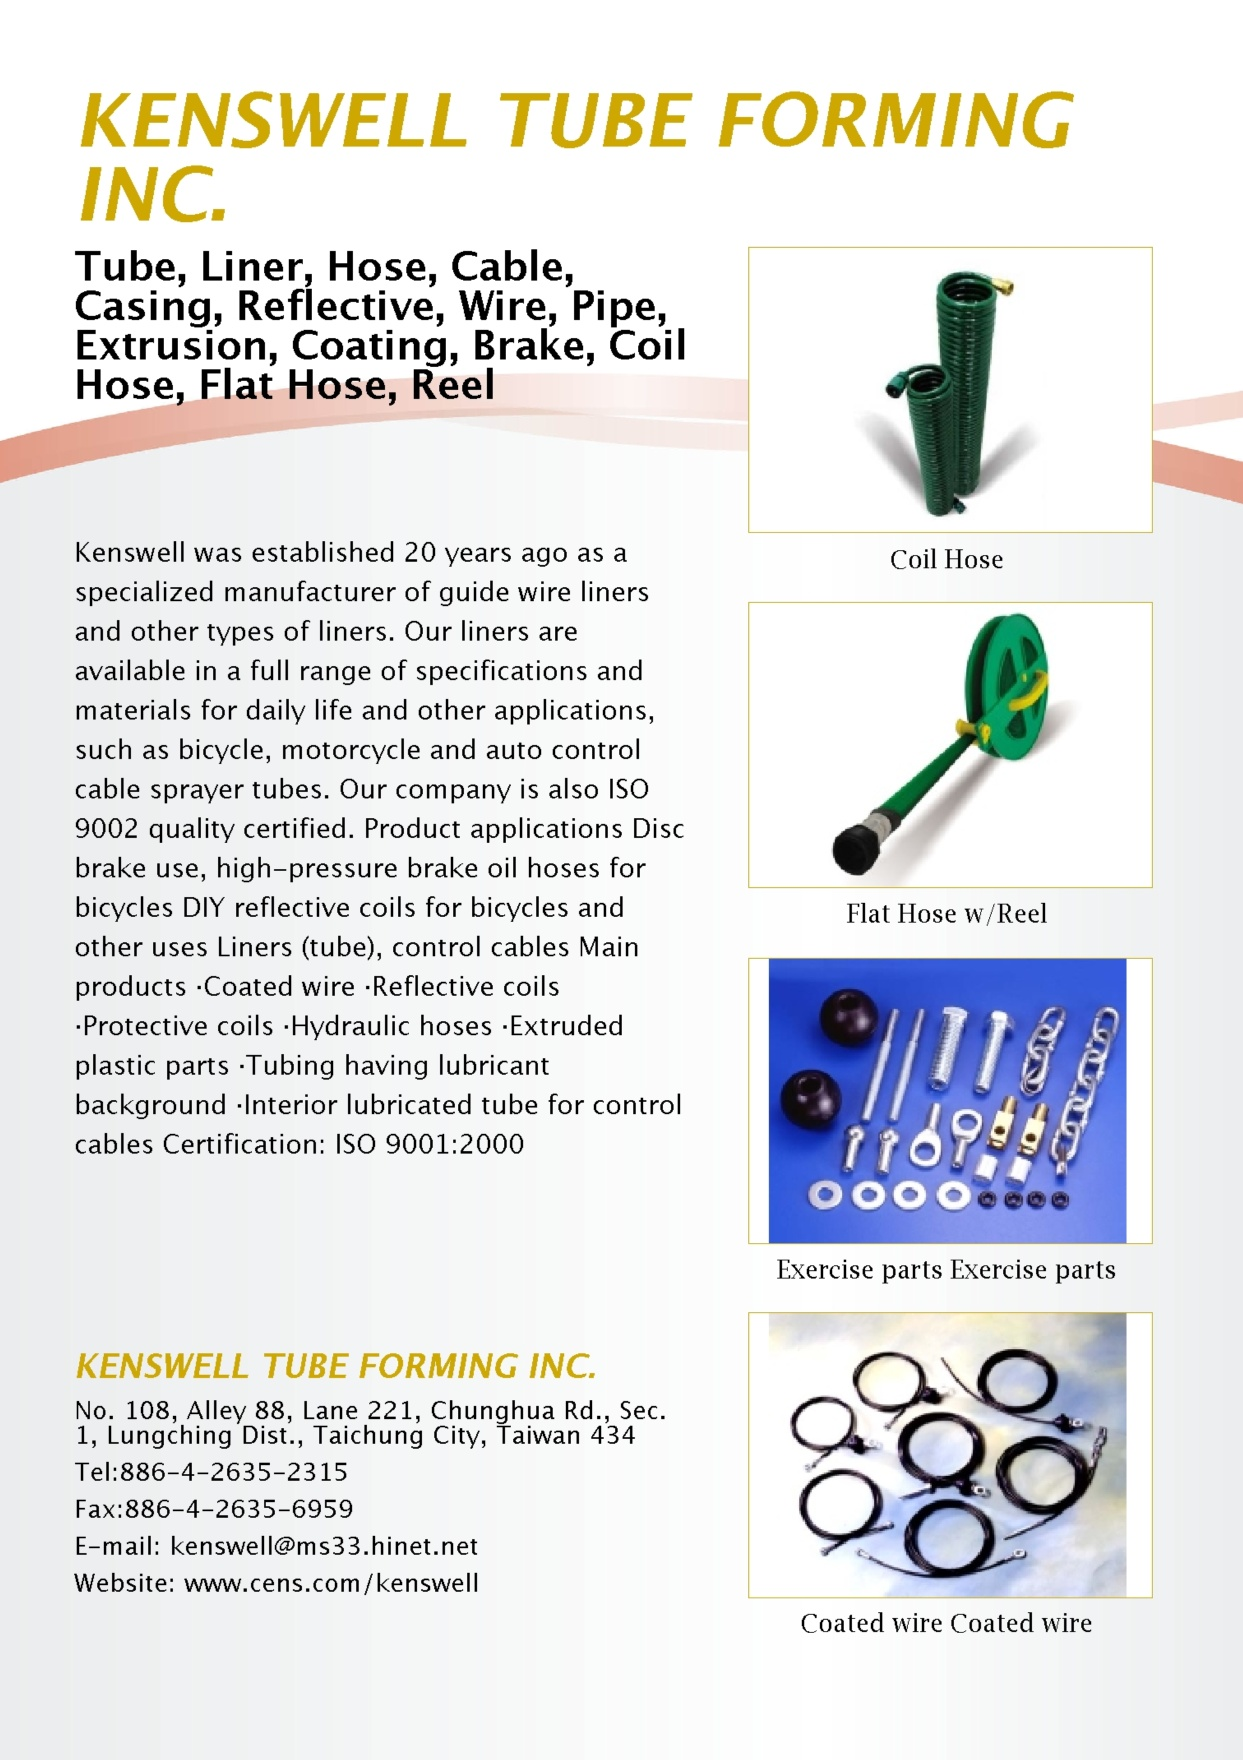 Bicycles Sports Equipment E-Magazine KENSWELL TUBE FORMING INC.